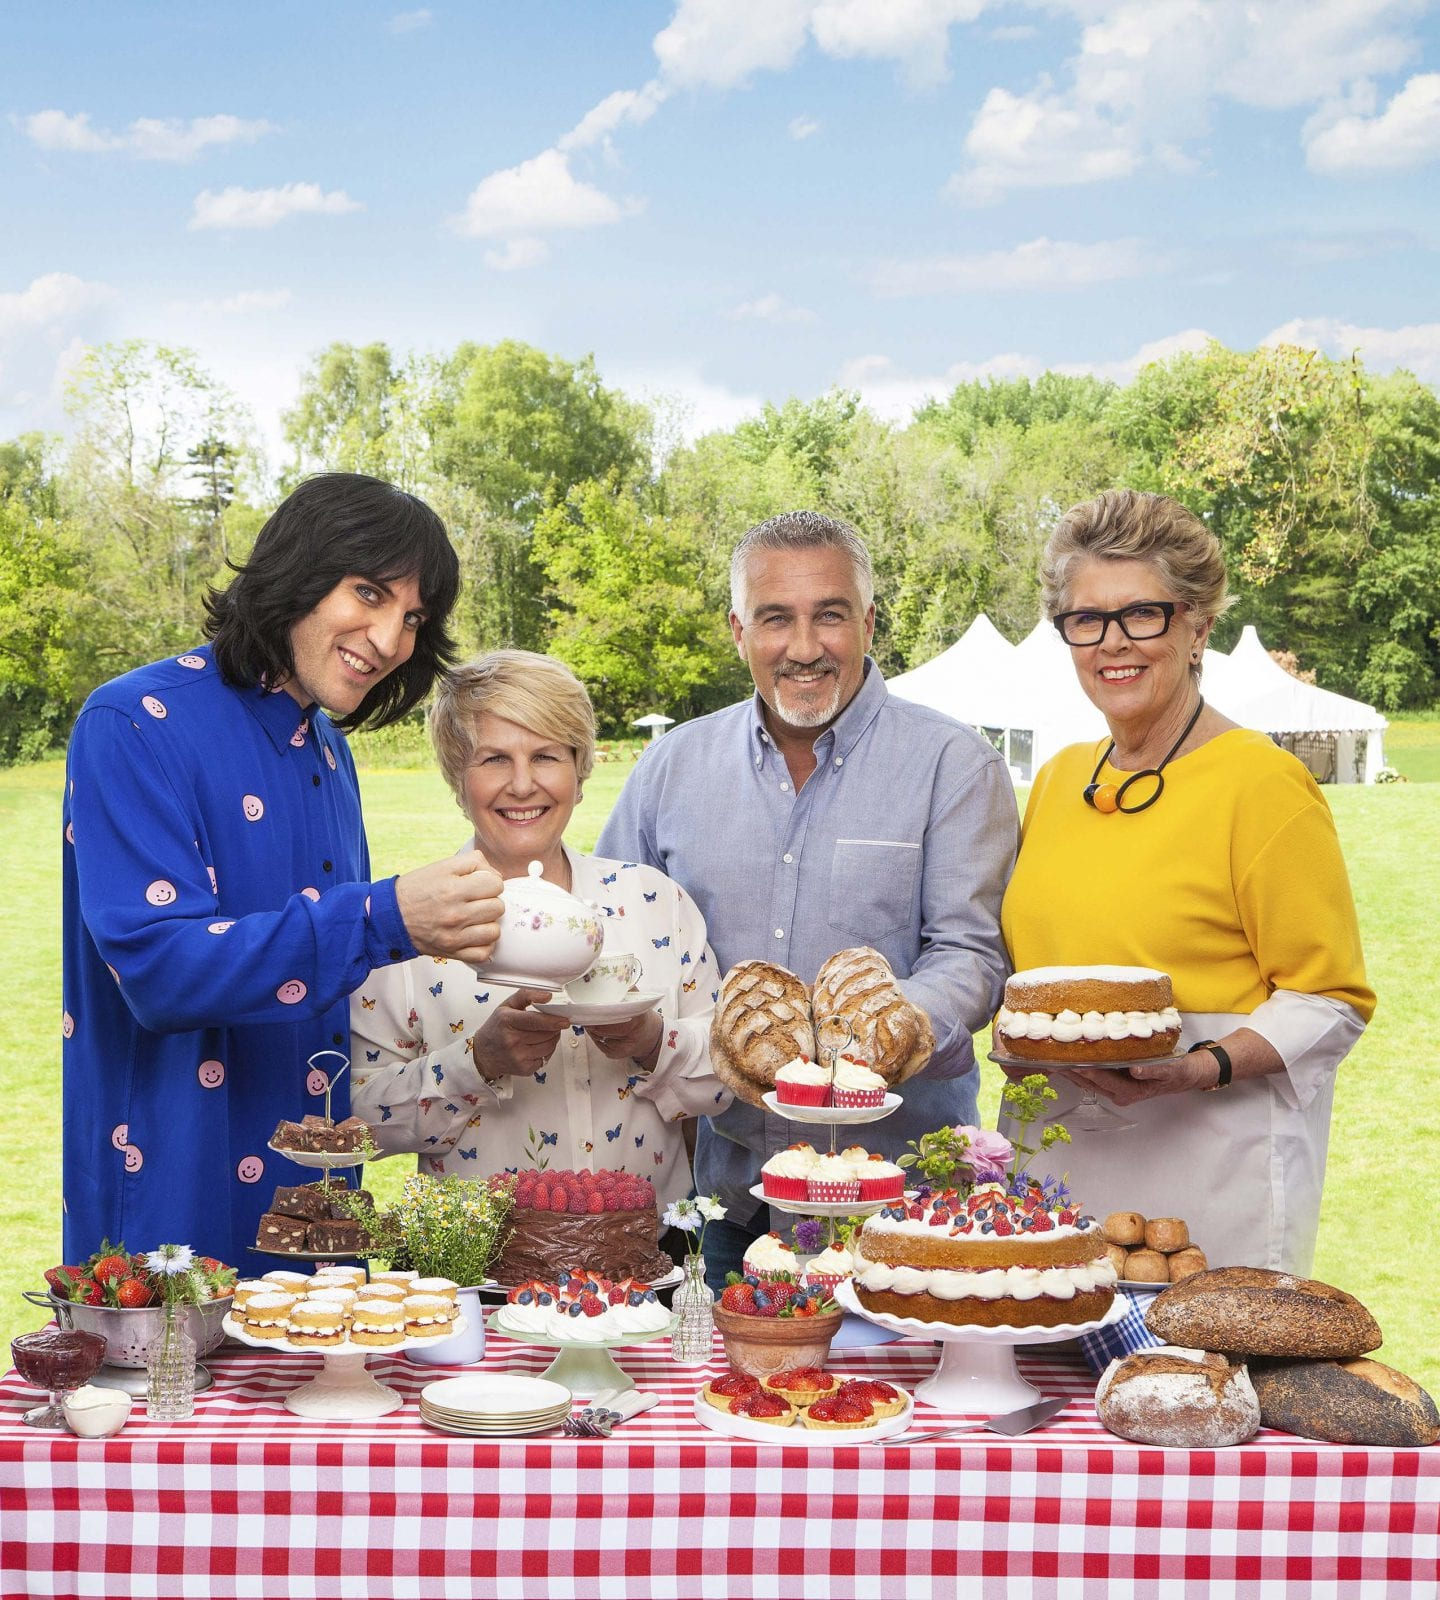 And the real Bake Off 2017 winner is...Channel 4 as £75m ...